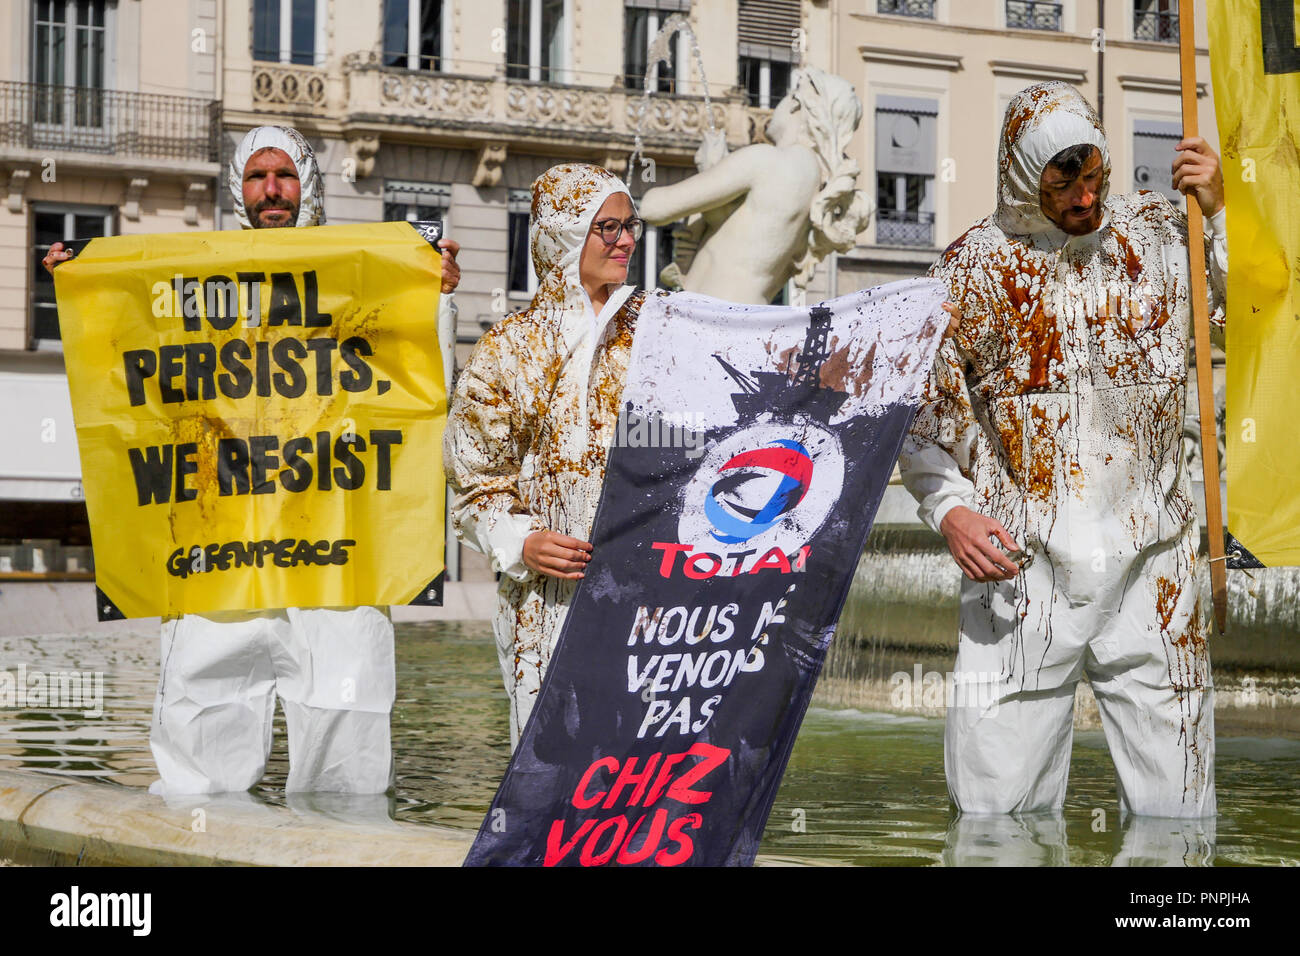 Lyon, France, september 22nd 2018: As part of a national Day of action organized by Greenpeace France and ANV-Cop21 (Non-Violent Action Cop21), a group of environmental defense activists occupy Jacobins fountain in Lyon (Central-Eastern France) on september 22, 2018, to protest against the suspected destruction of the Amazonian reef due to the fossil energy exploitation by Total Petroleum company. Credit Photo: Serge Mouraret/Alamy Live News - Stock Image